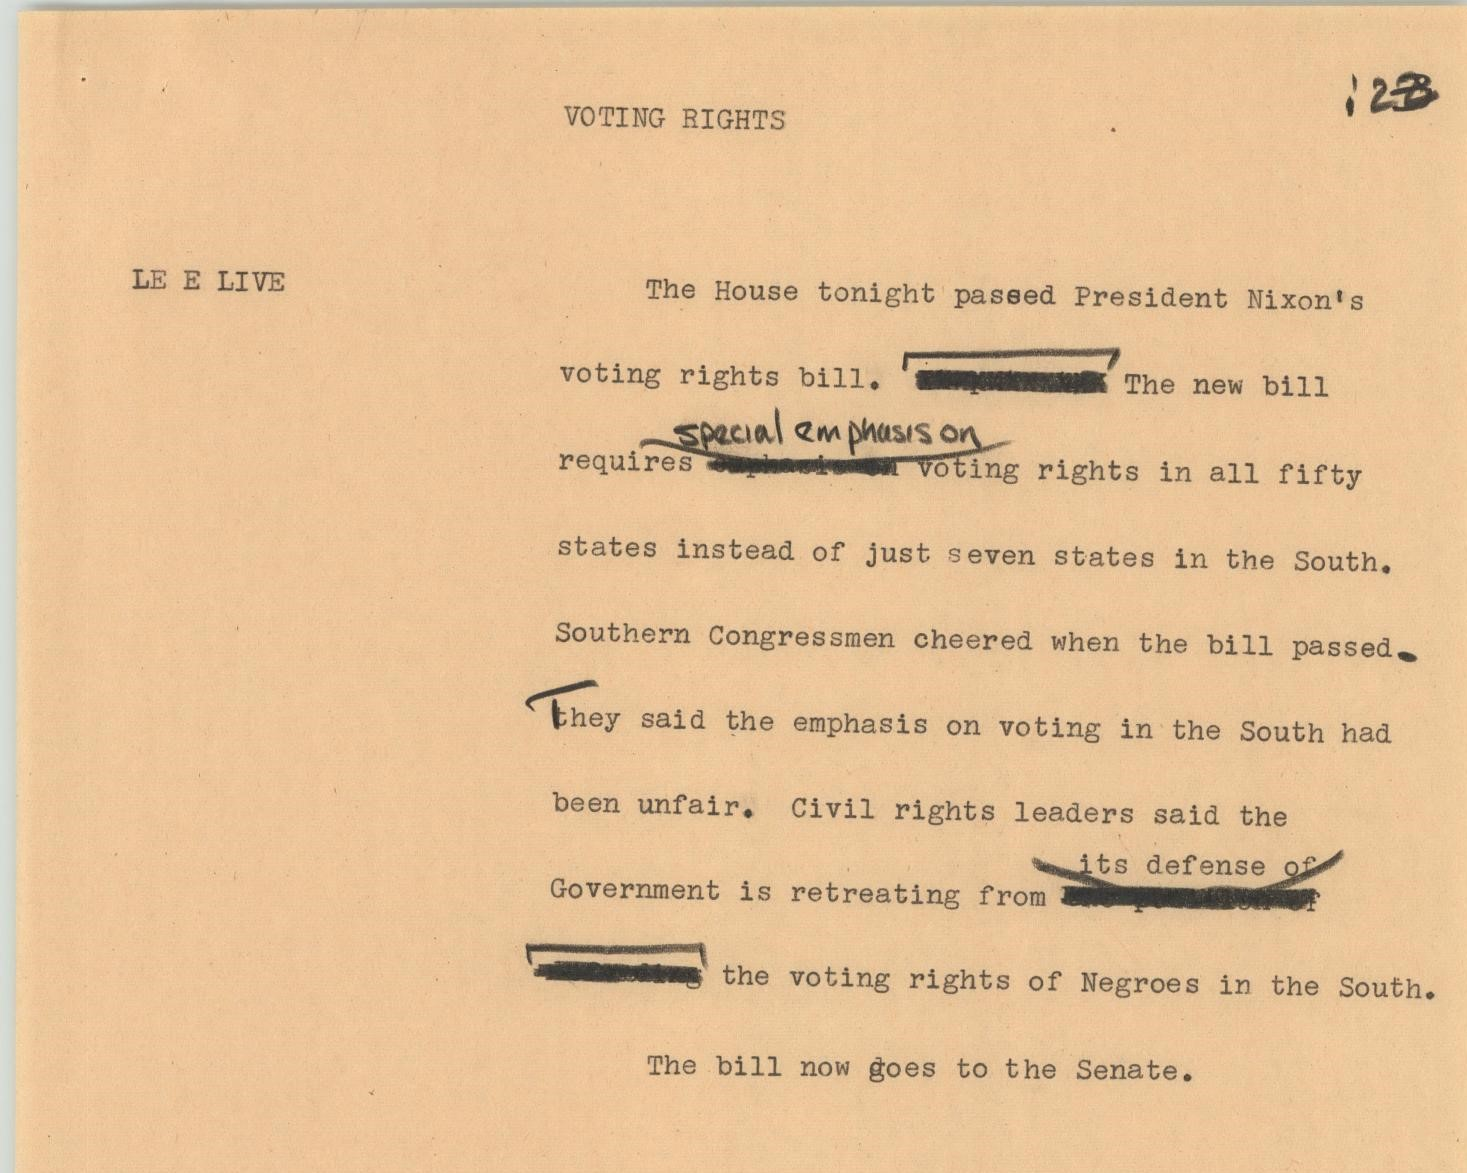 yellowed paper with typewritten text. Title says Voting Rights. Main text has words crossed out and correcting made in black ink throughout.